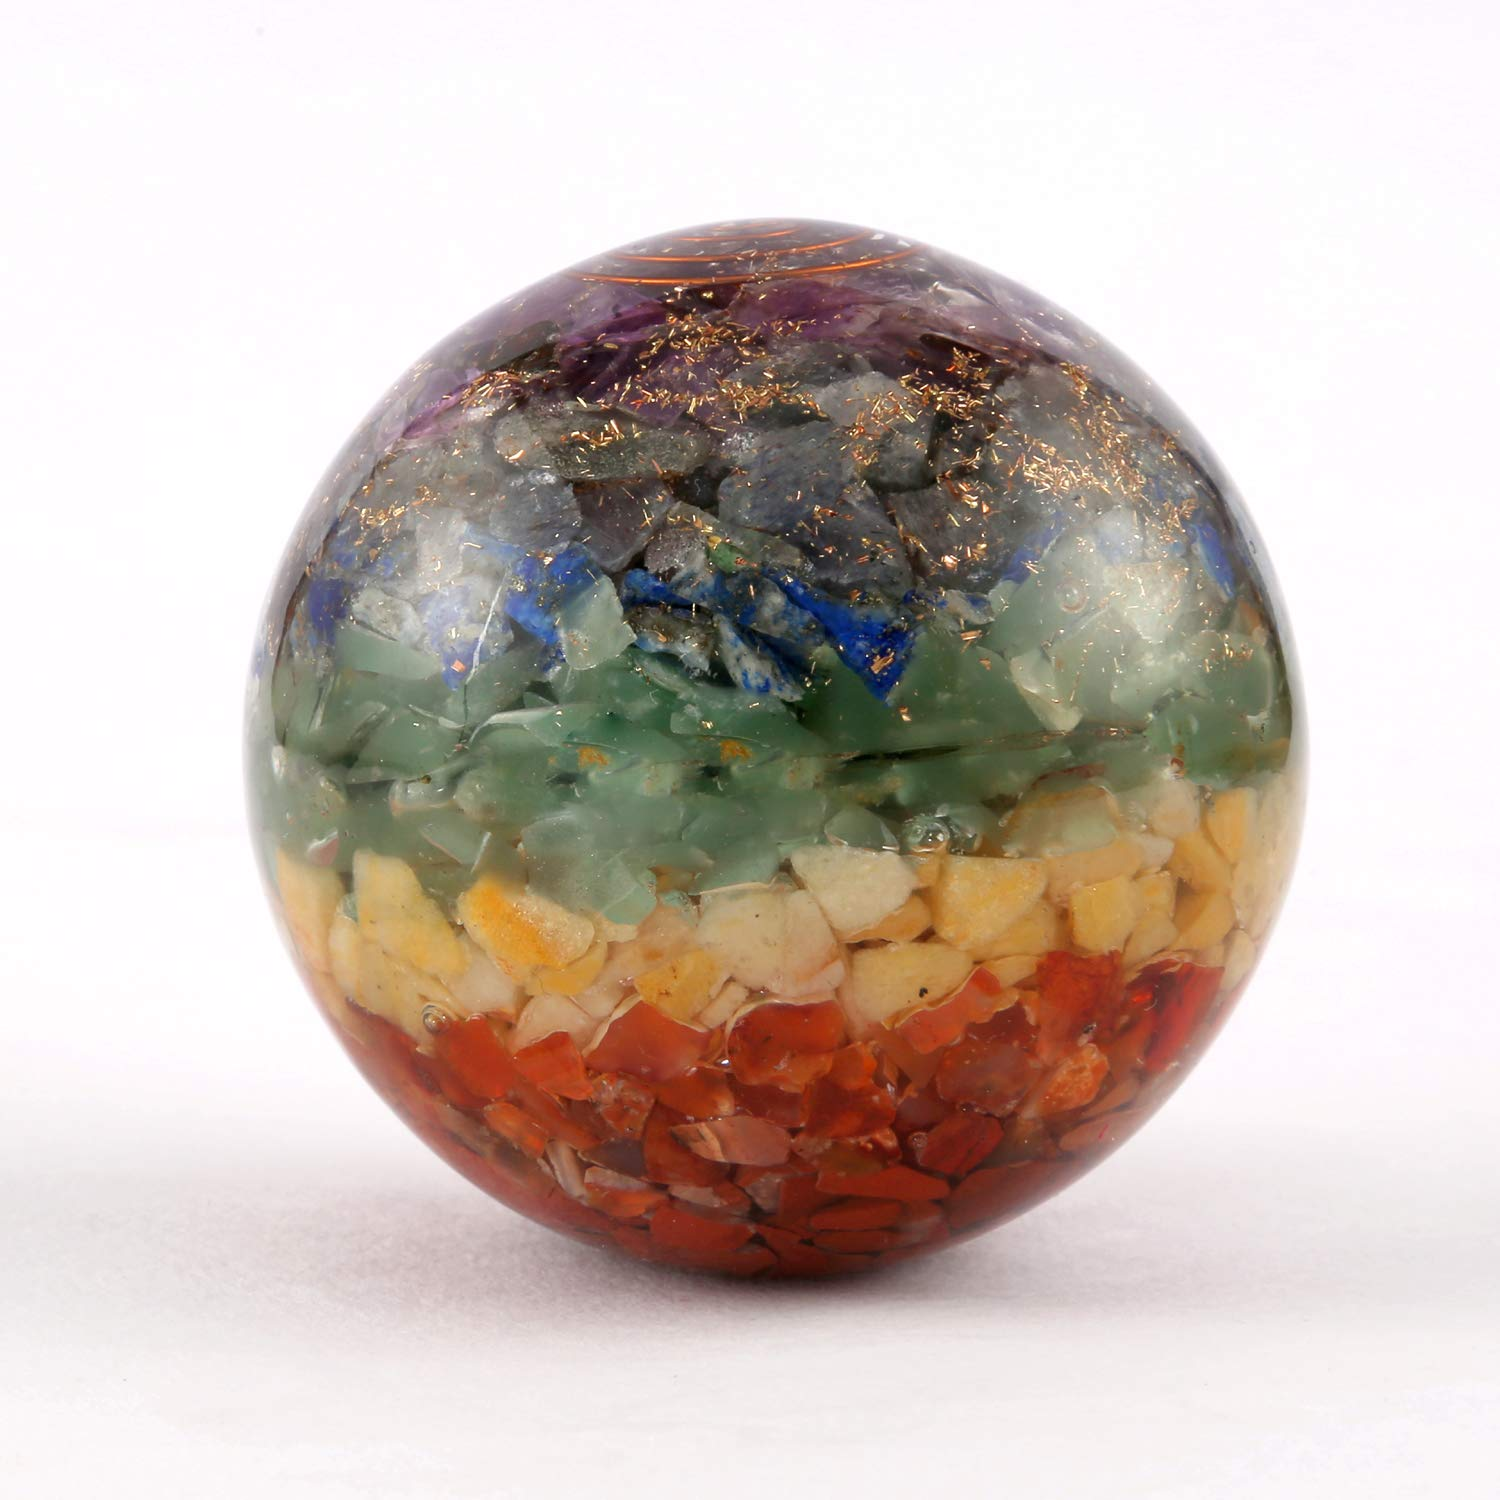 Aatm Healing Gemstone Seven Chakra Sphere Ball Aatm Collection GAPC-157